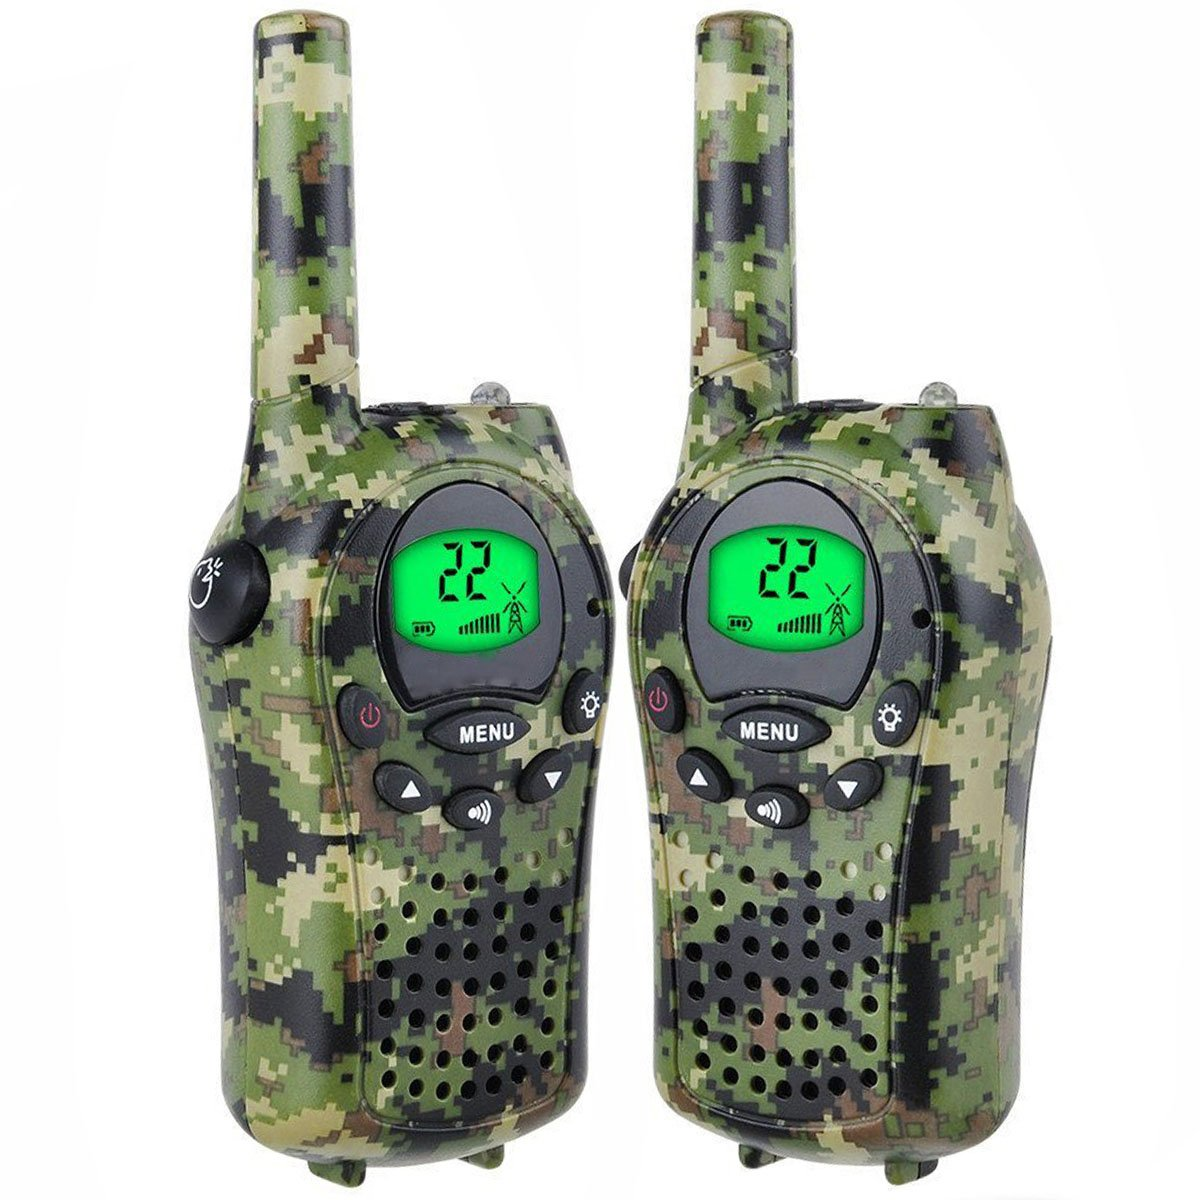 TOP Gift Toys for 3-12 Year Old Boys, Handheld Mini T-68 Walkie Talkie for Kids 3 Miles Range Best Gift Toys for 3-12 Year Old Girls Gifts for 3-12 Year Old Girls Boys Green TGUSMXD001